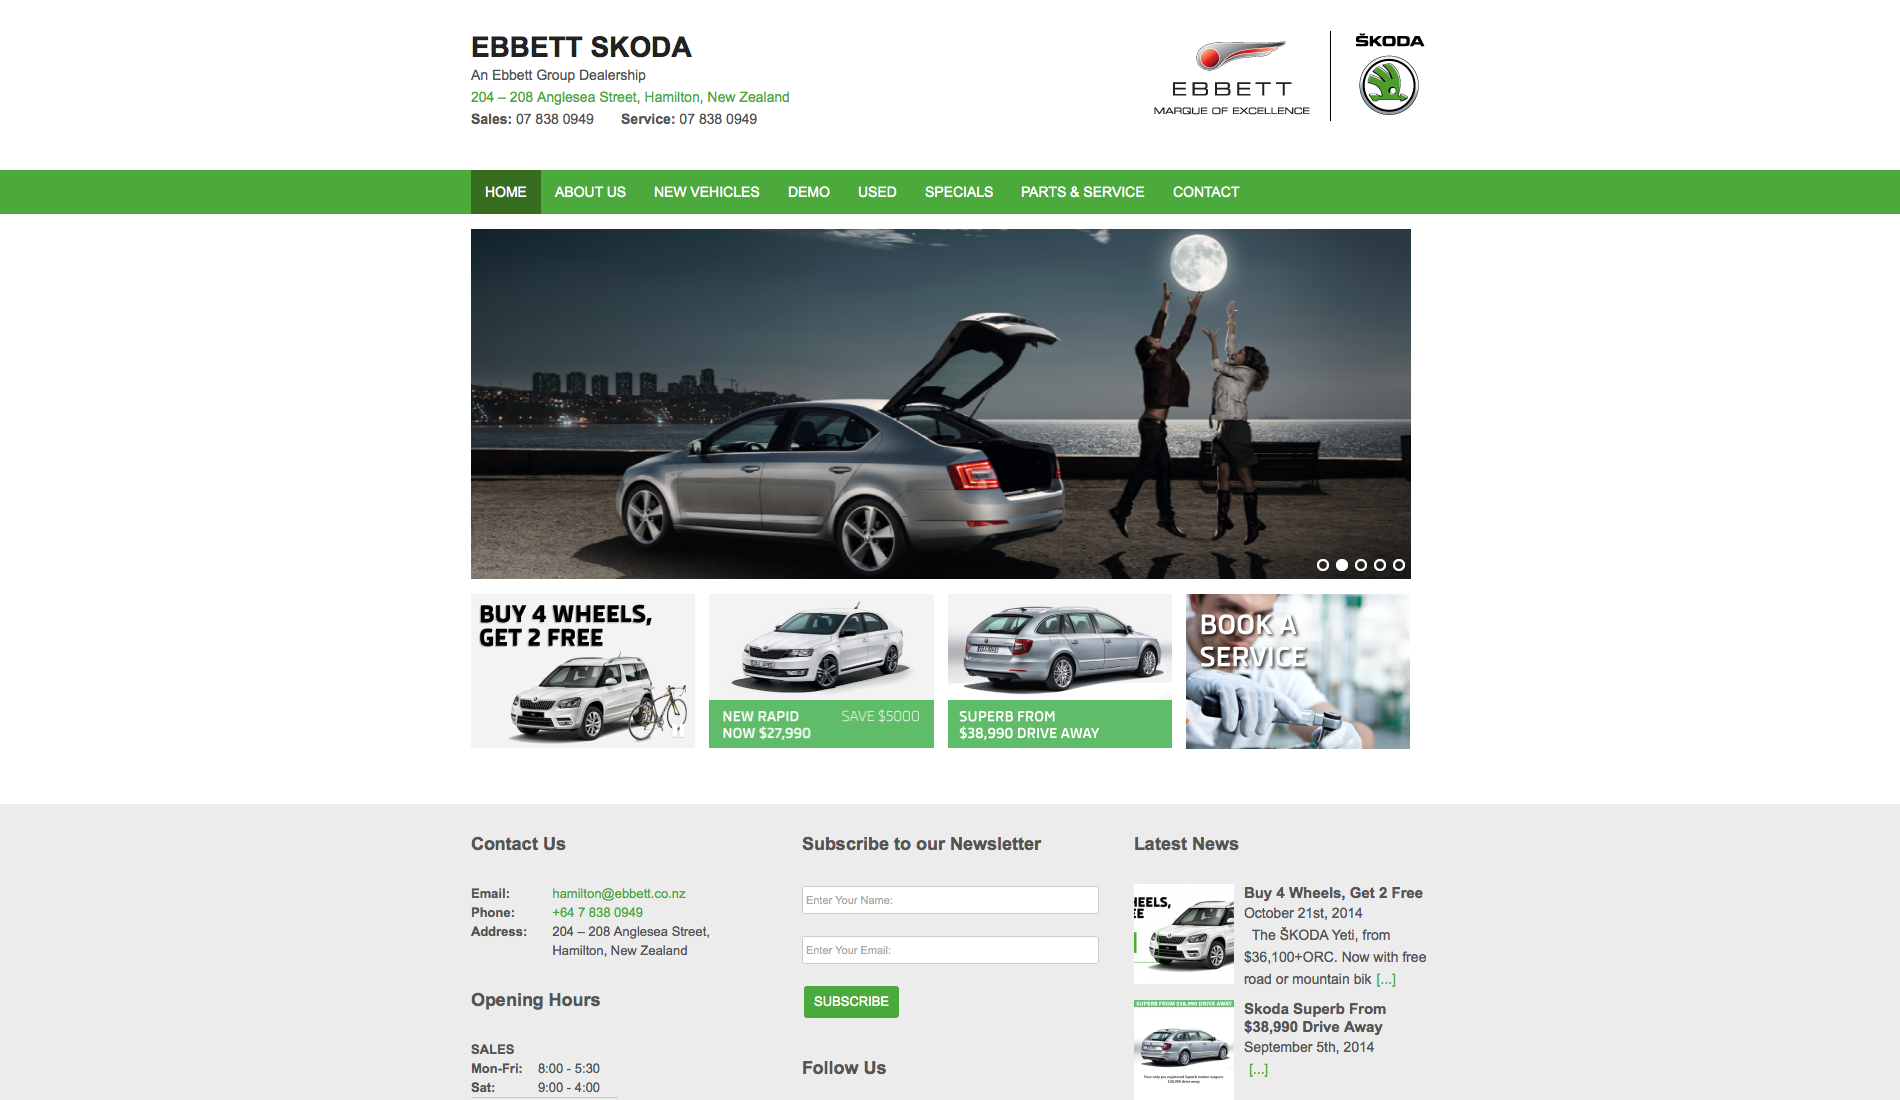 Ebbett Skoda Website Development